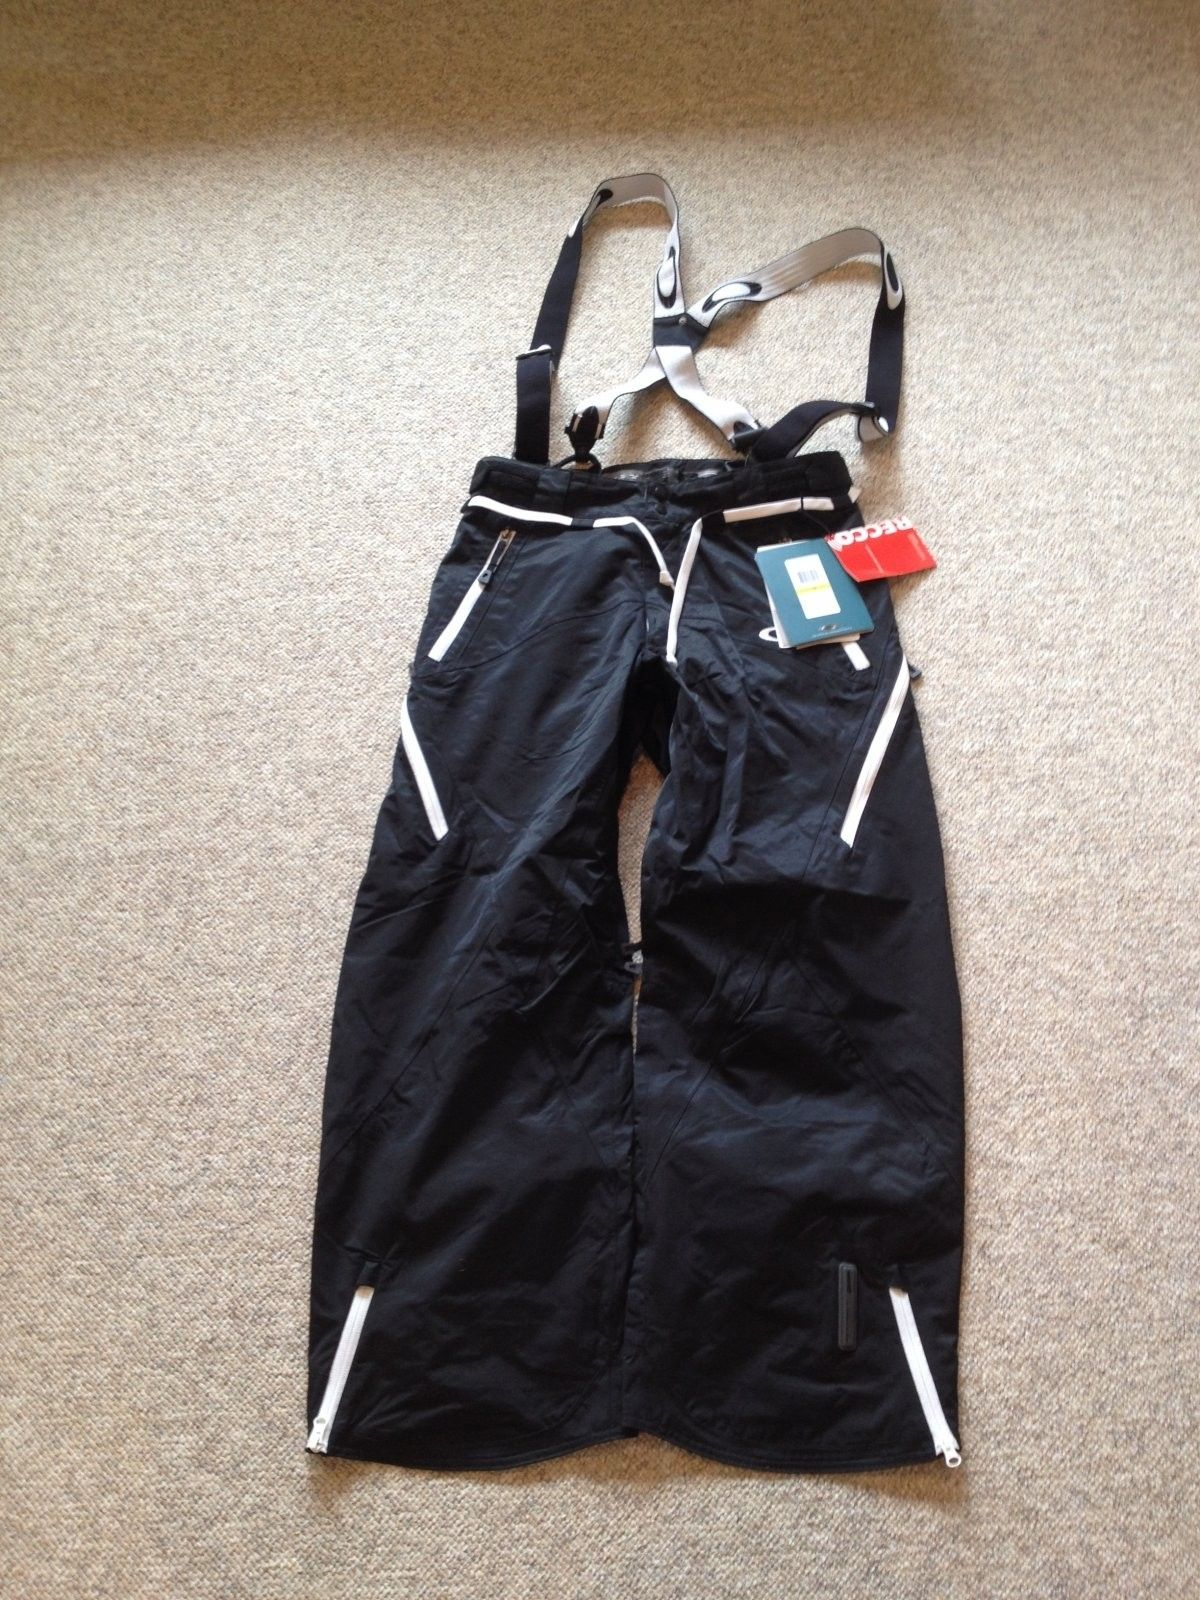 Men's Ascertain Snow Pants size M - photo 1.JPG